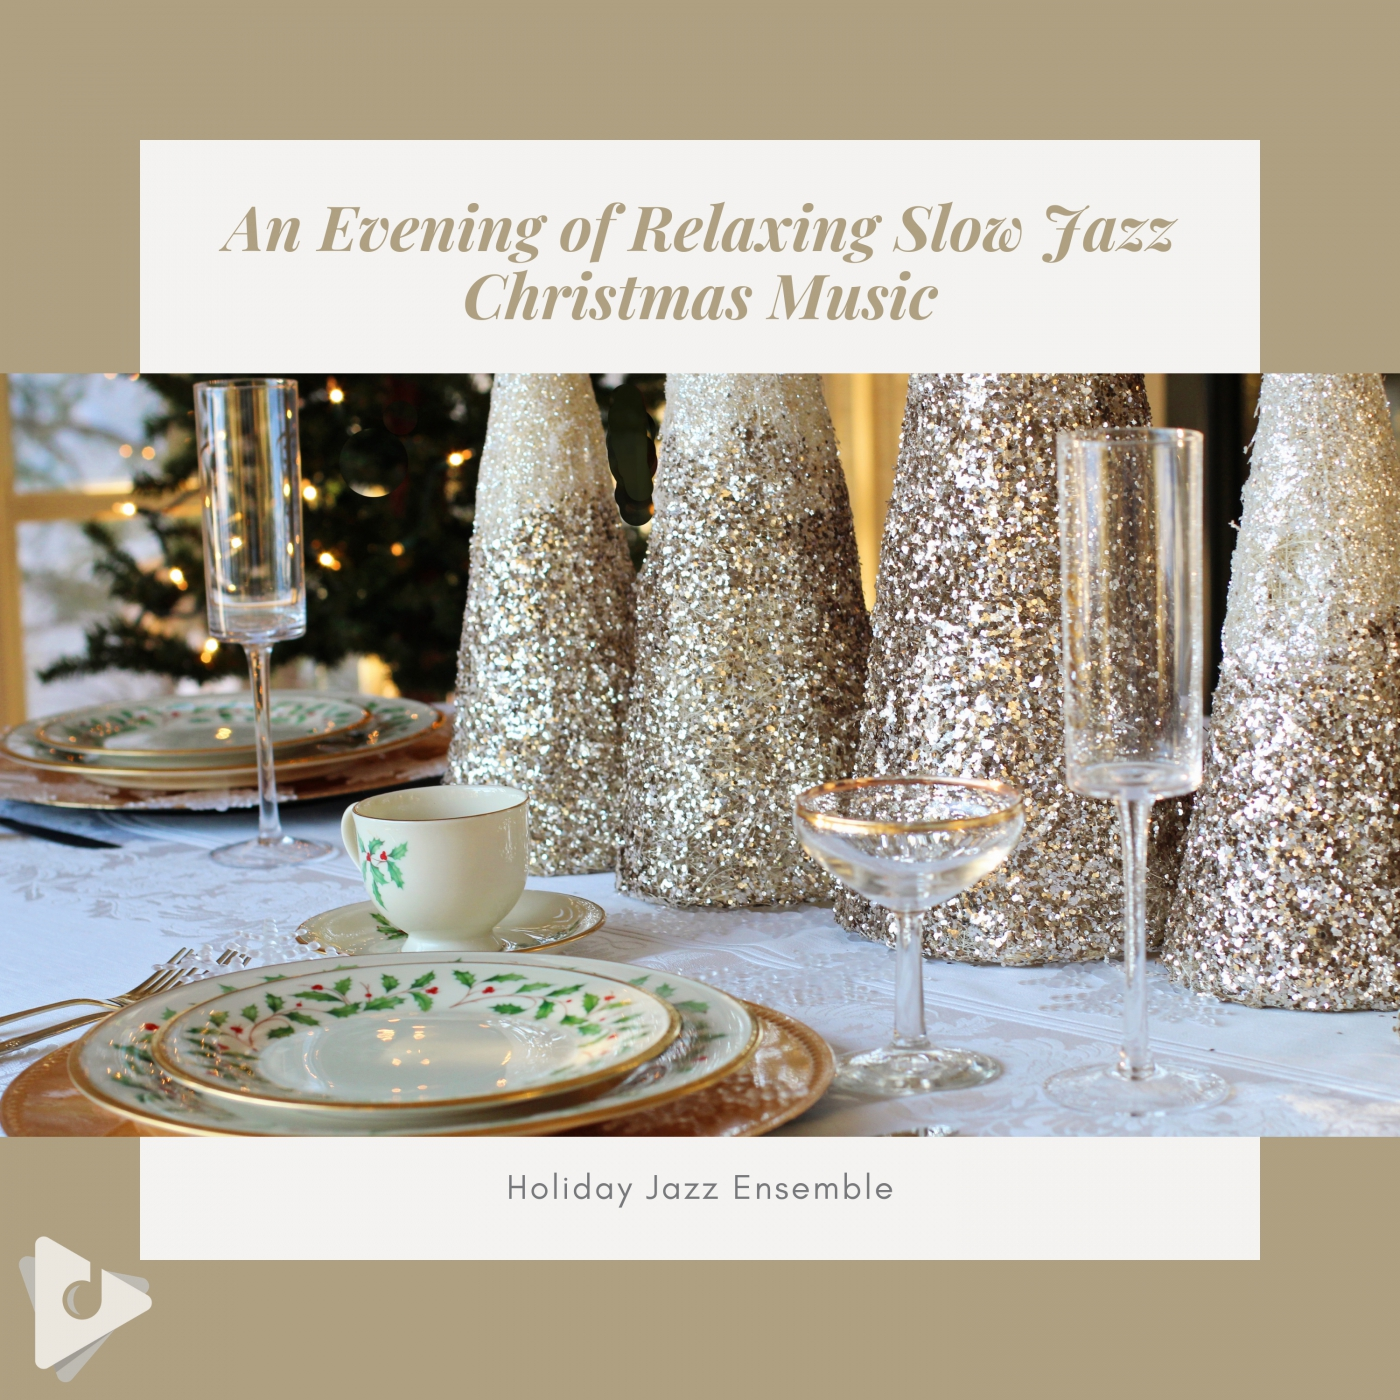 An Evening of Relaxing Slow Jazz Christmas Music